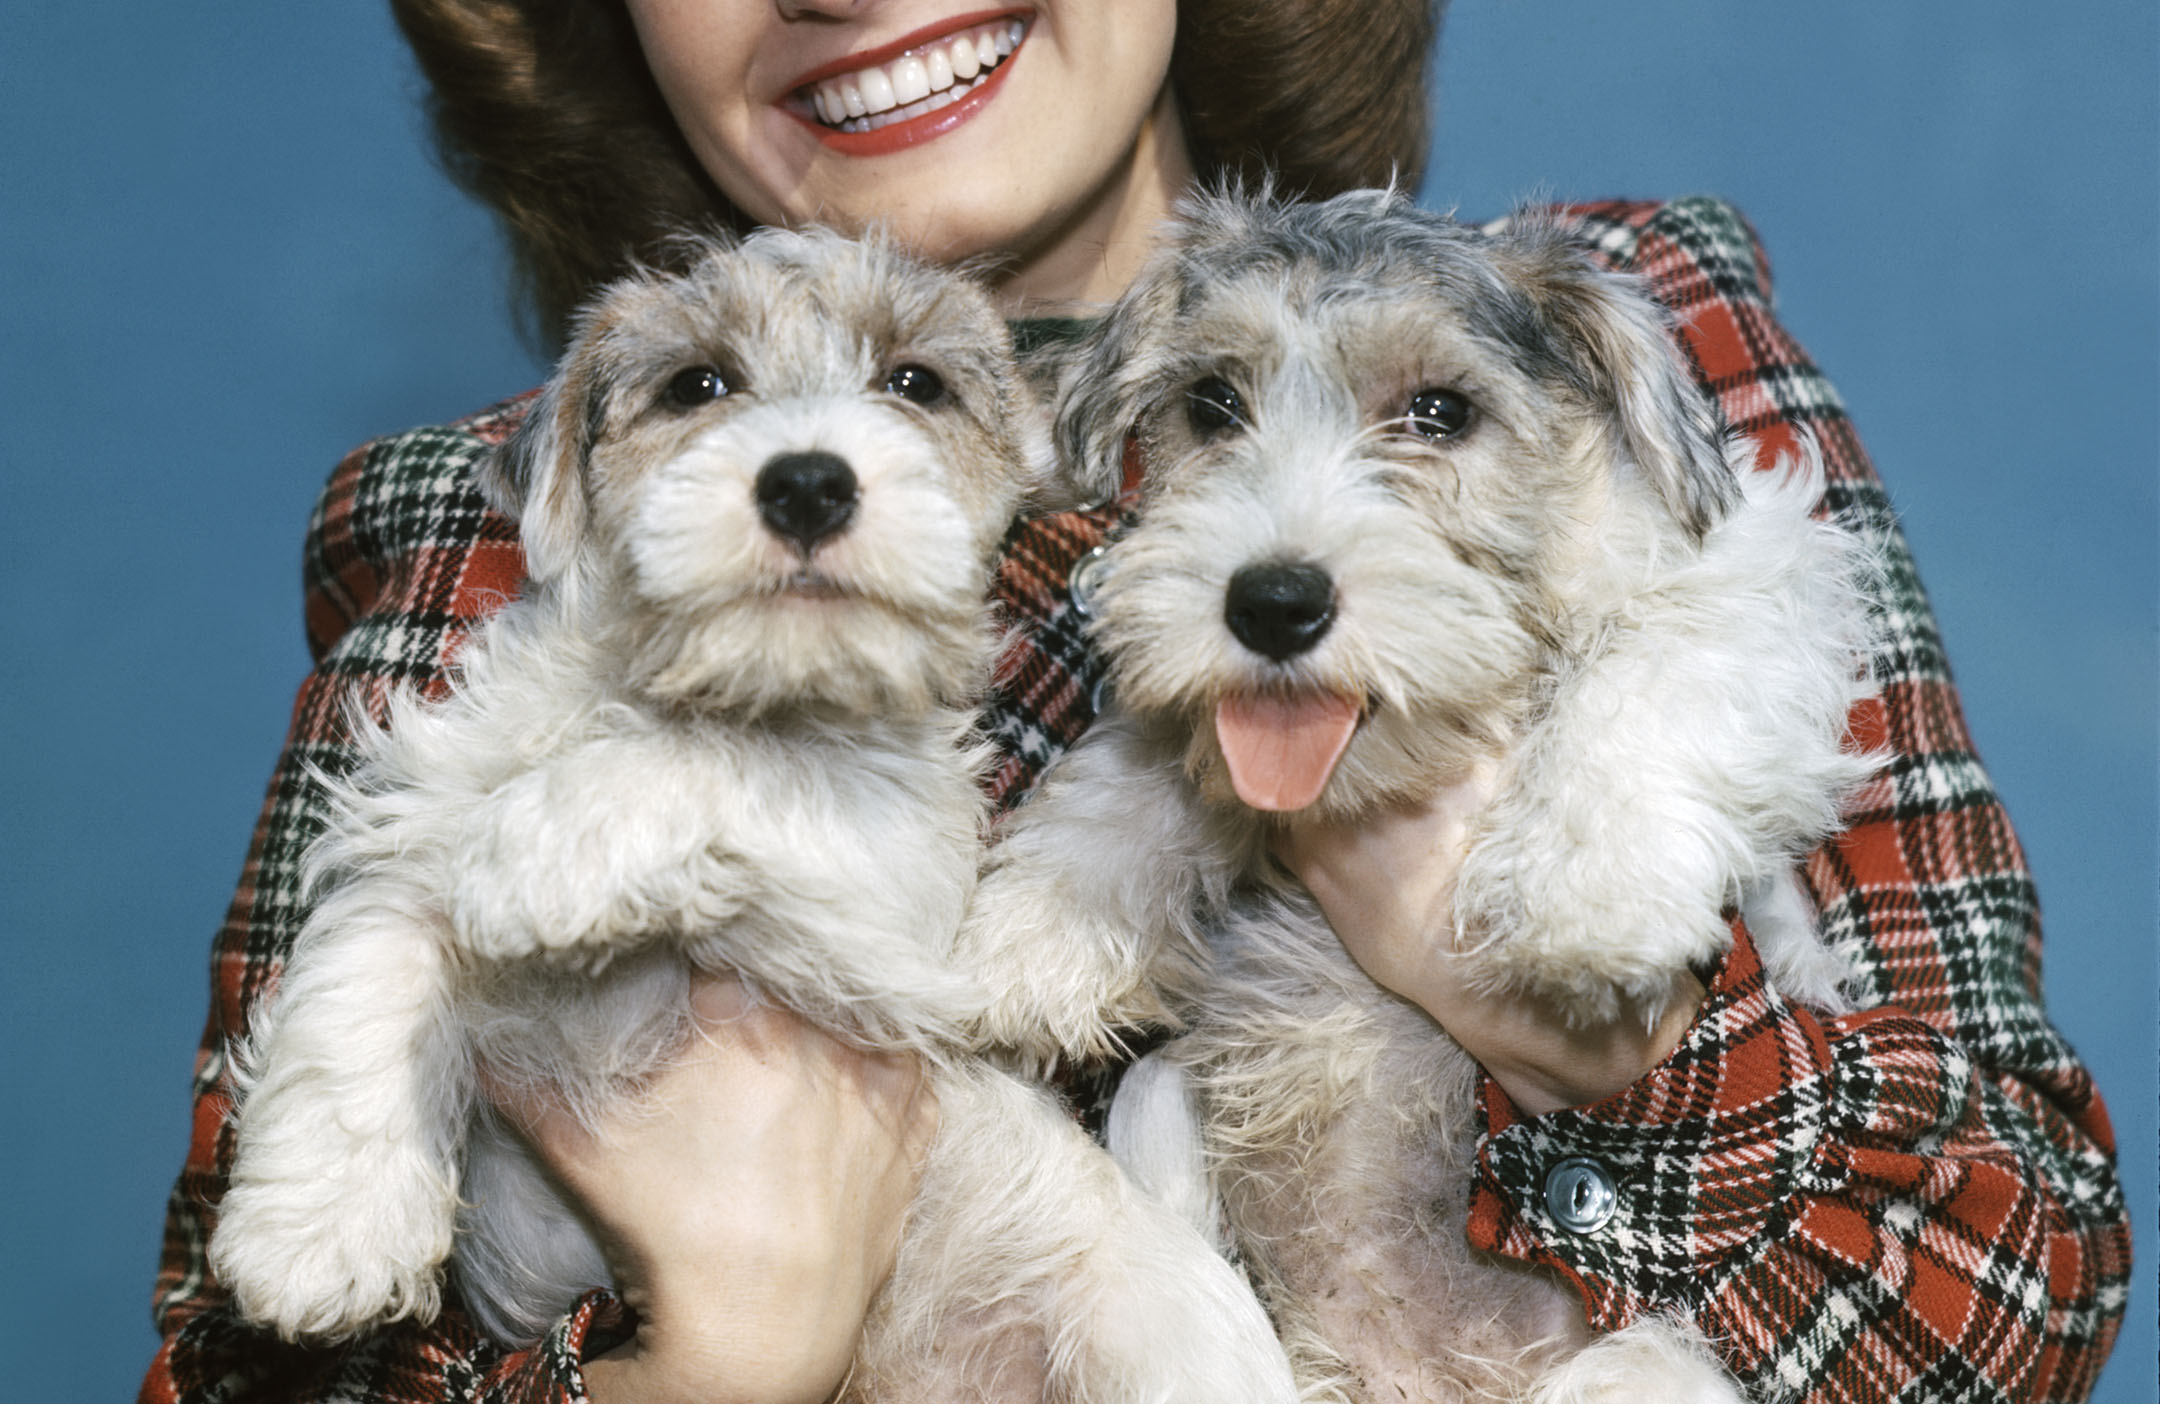 Sealyham terriers: The dogs that are small, friendly, full of character and great for families